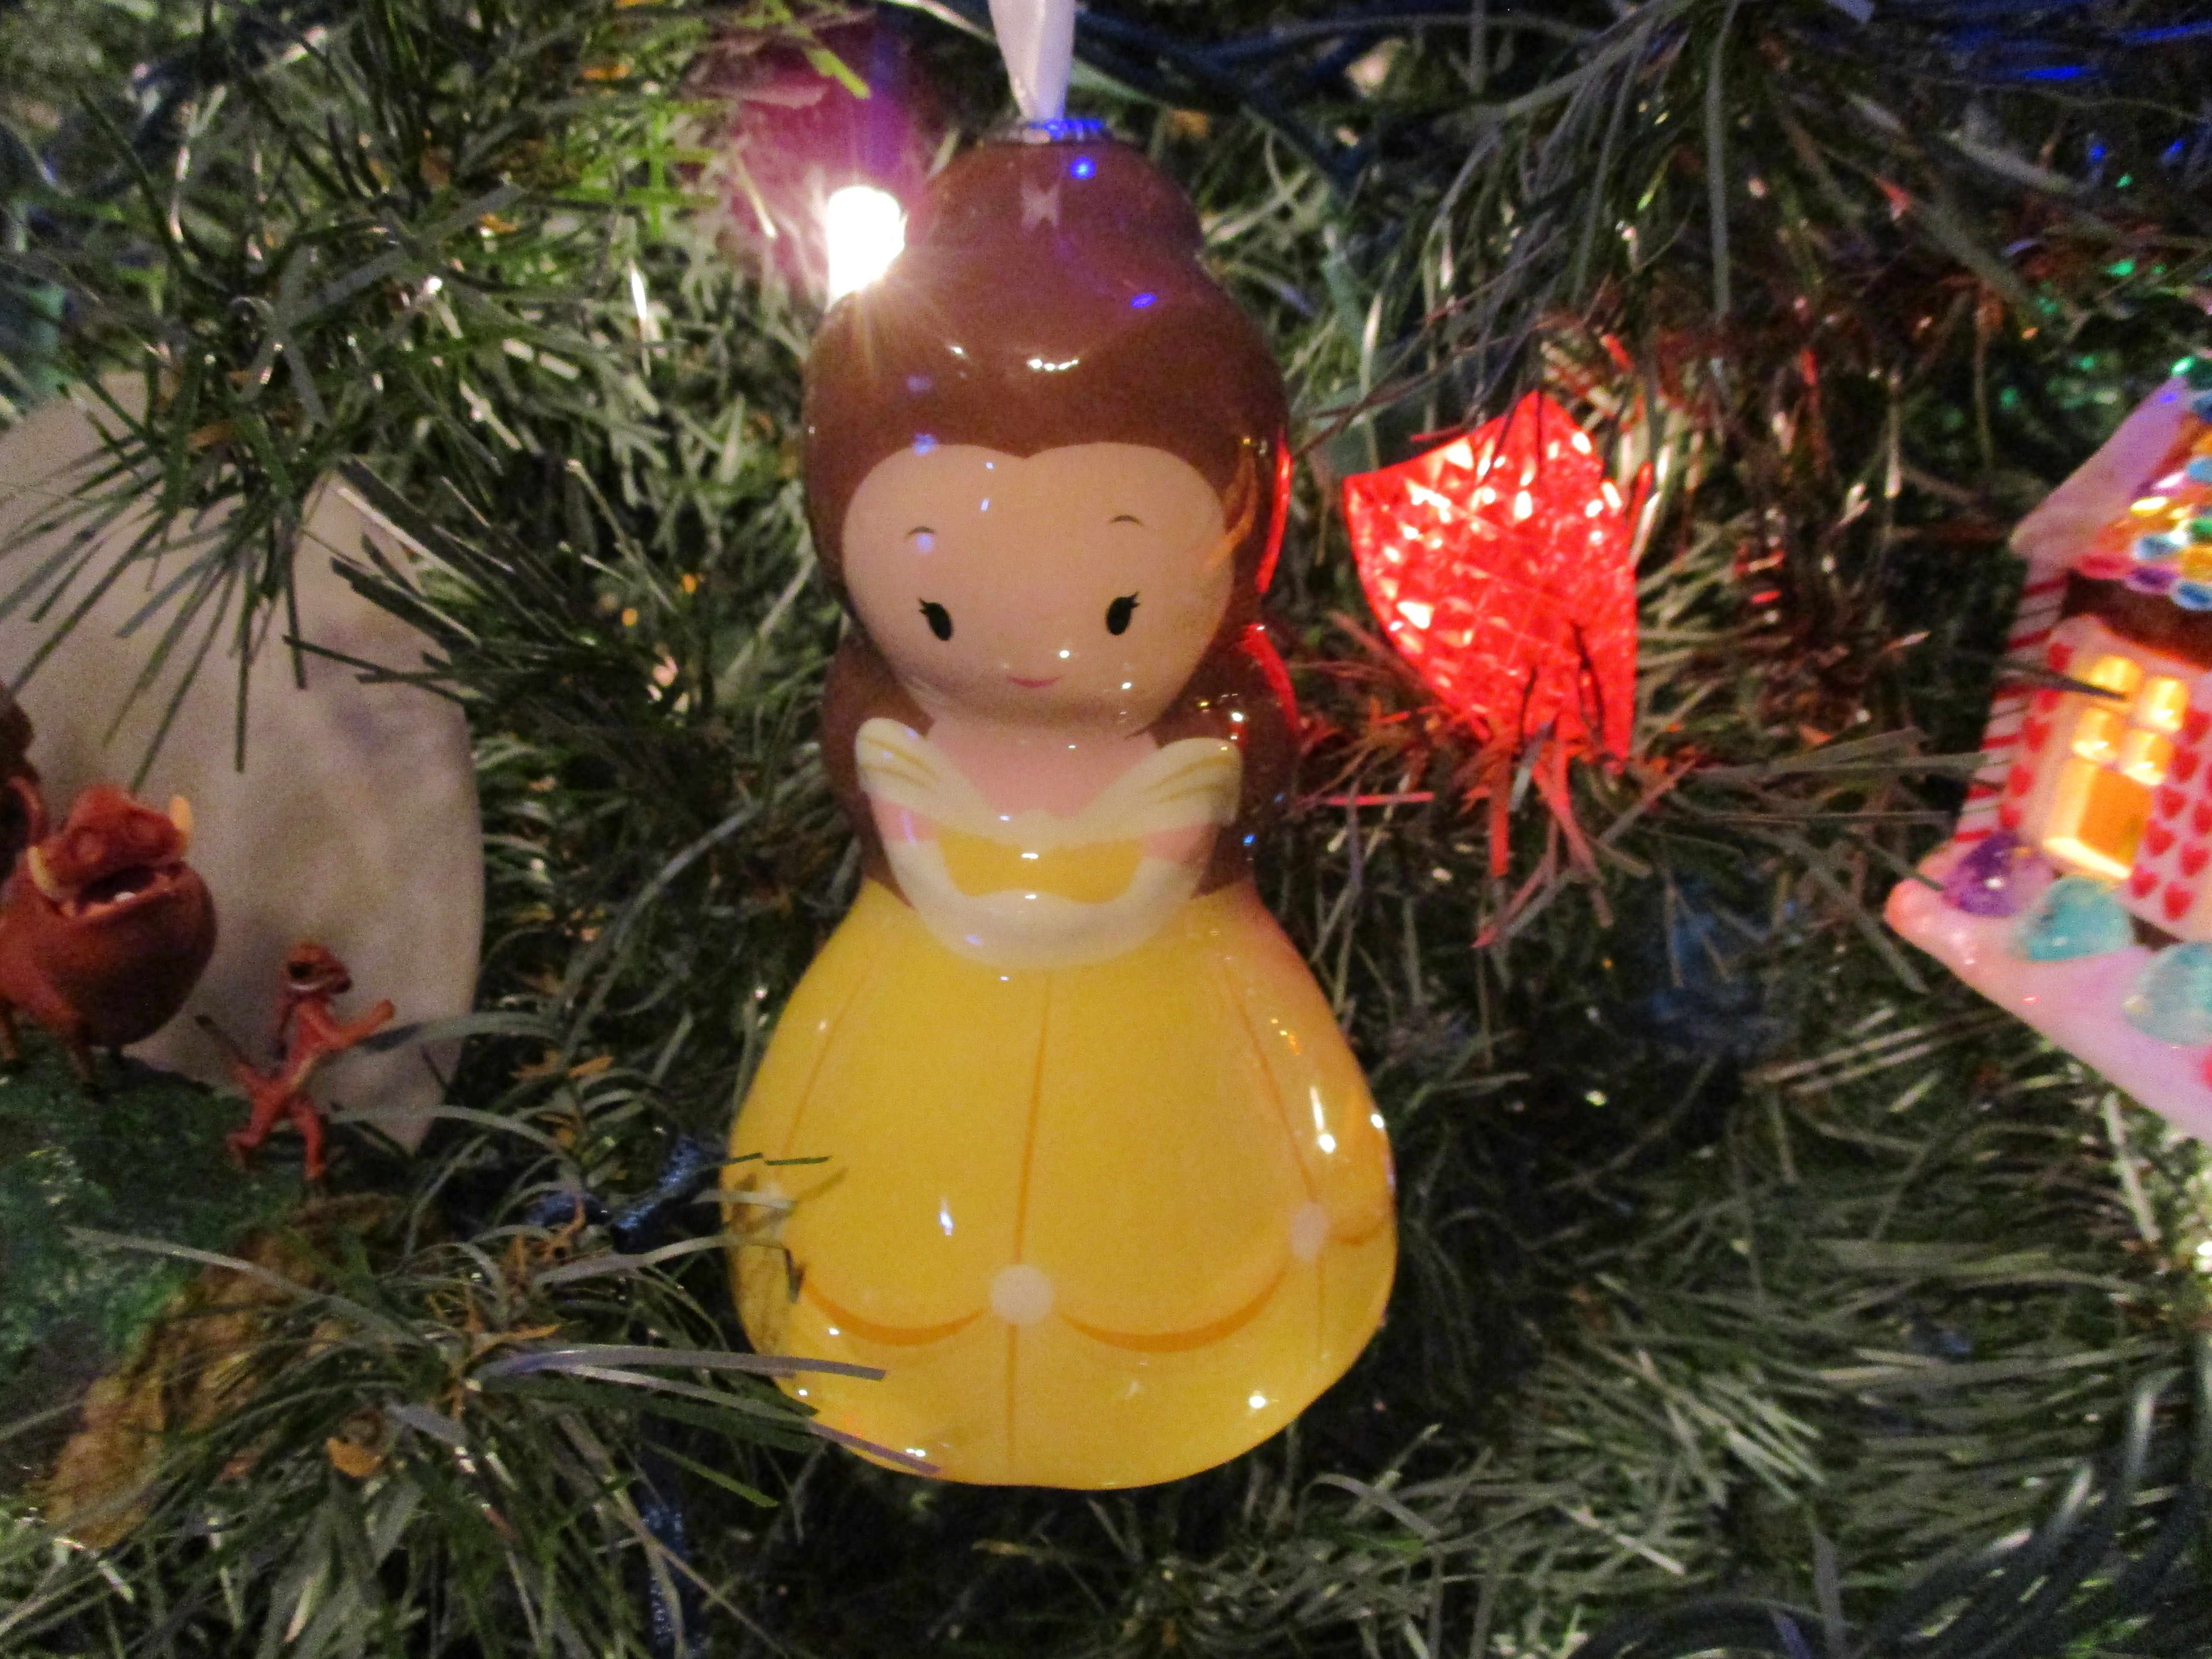 Pin by luckdragon9 on Beauty and the Beast Ornaments in